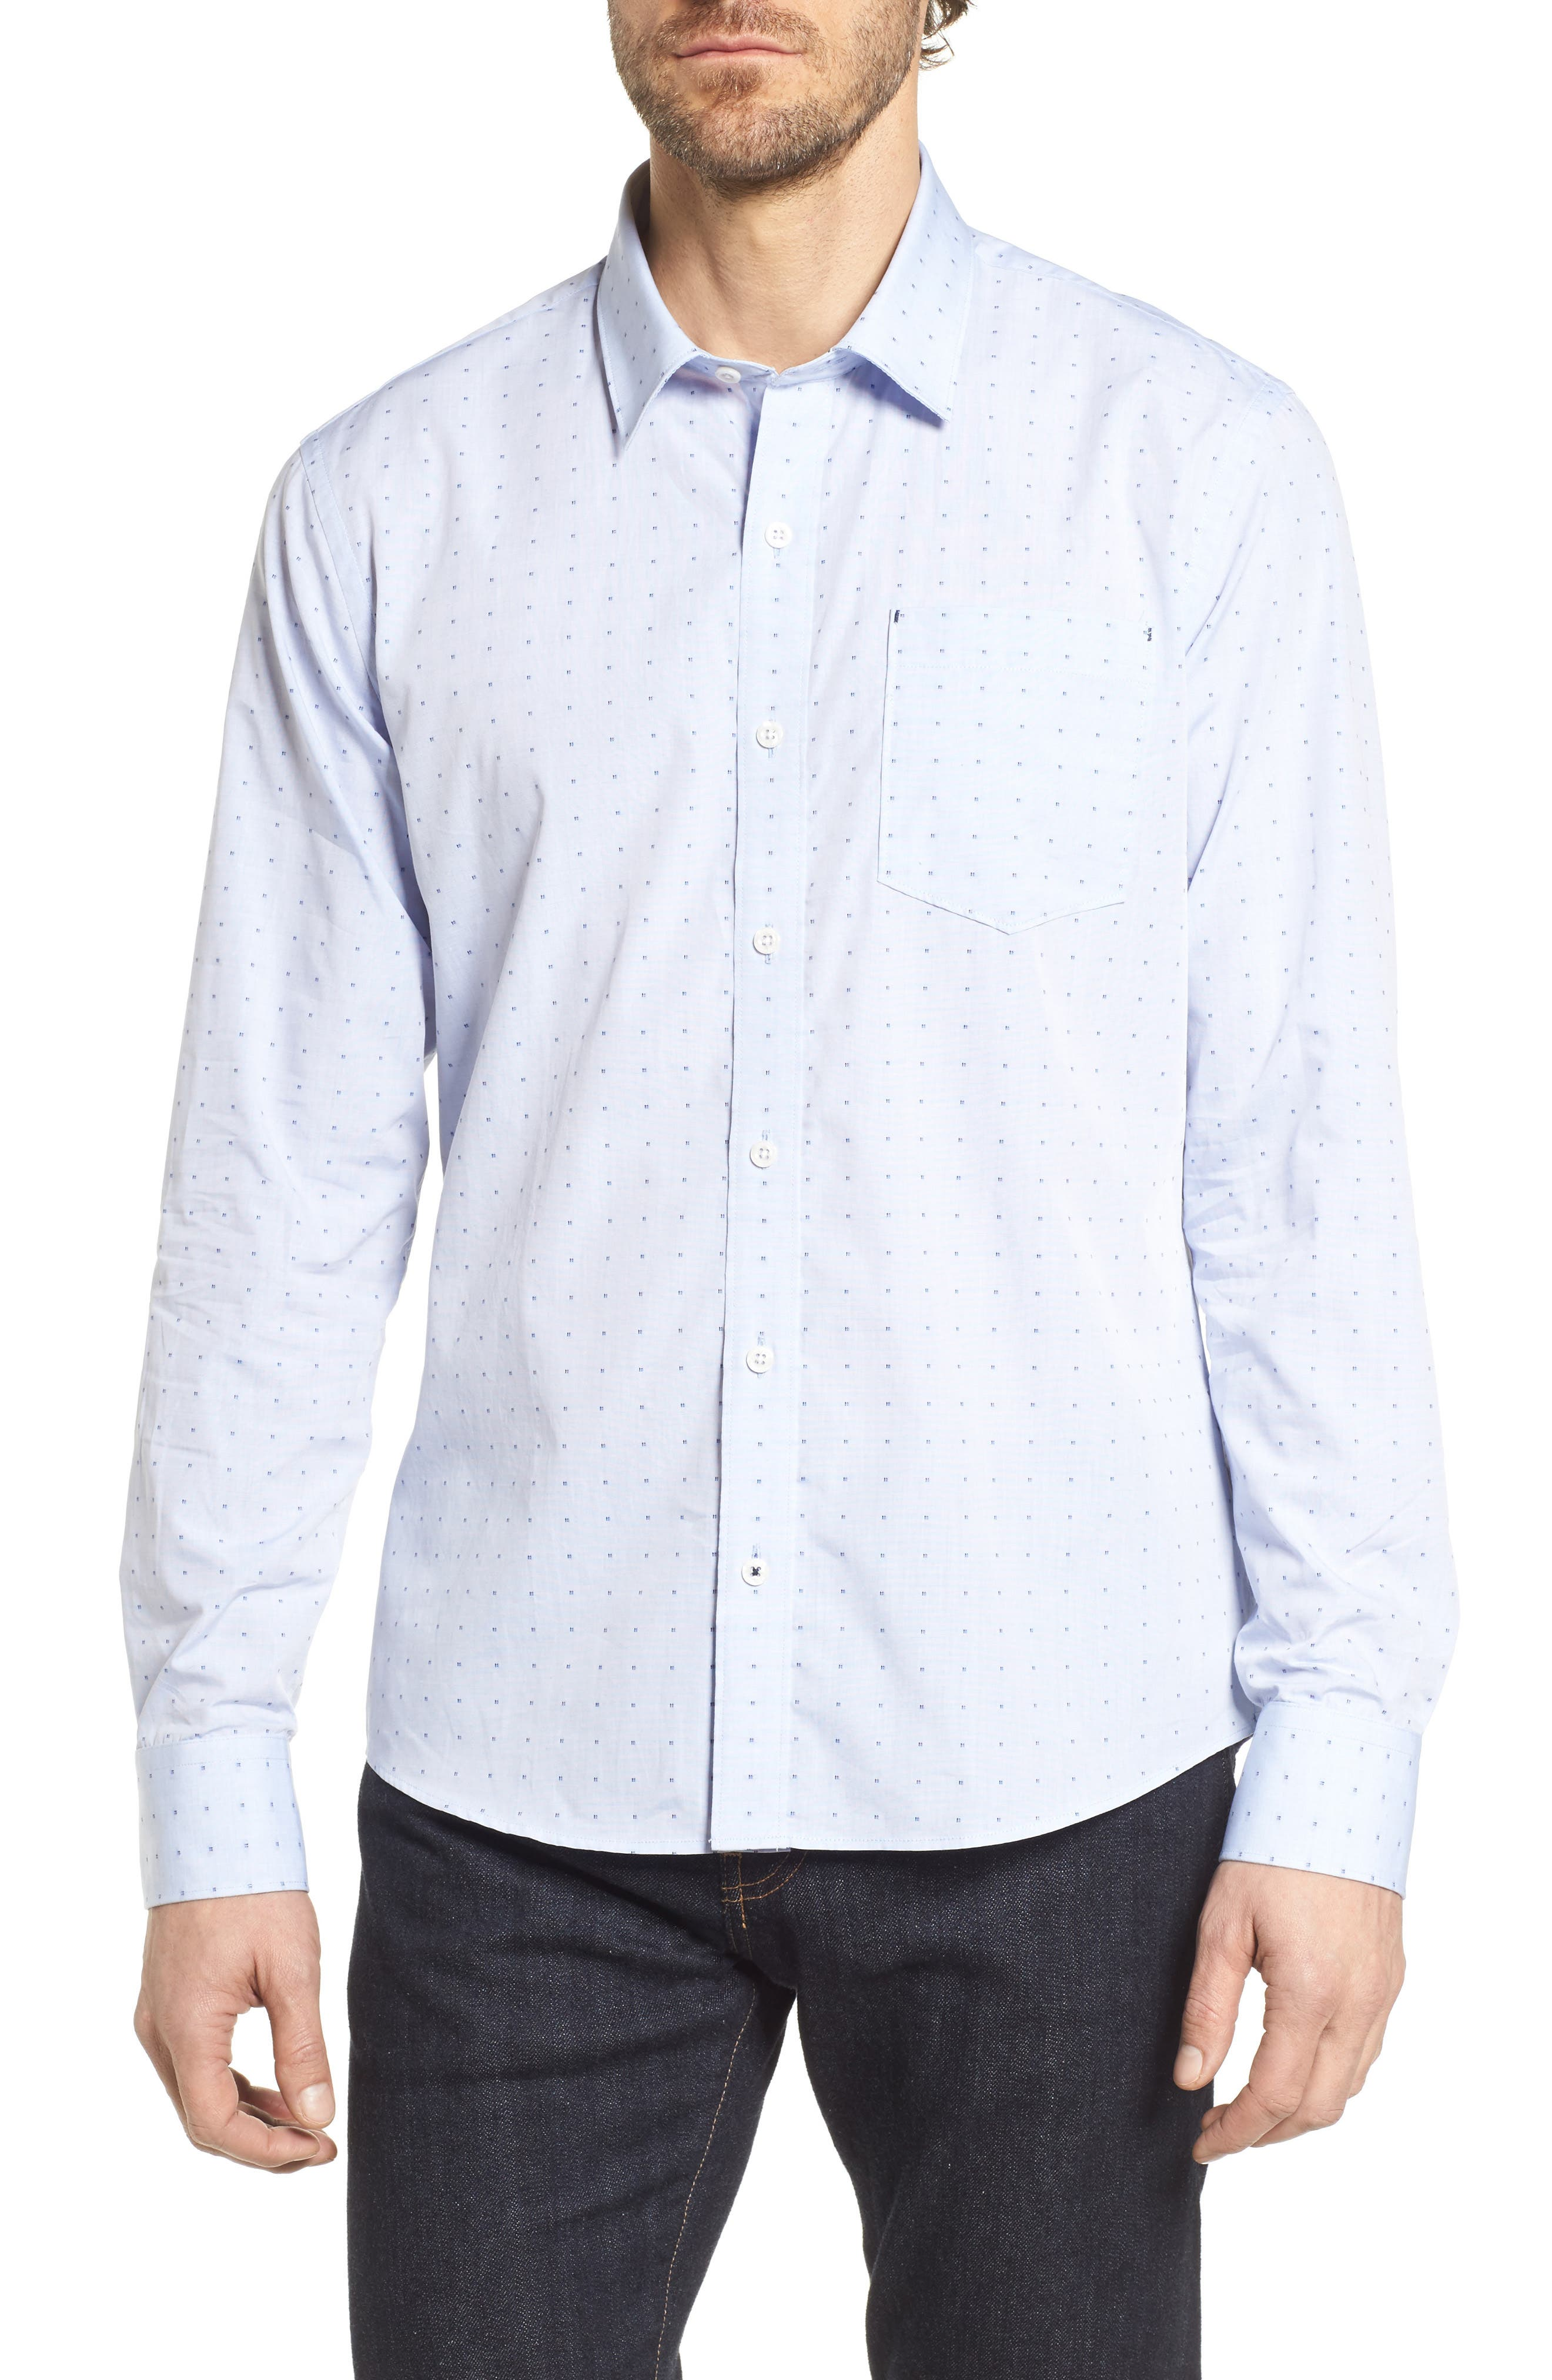 Trust in Me Woven Shirt,                             Main thumbnail 1, color,                             451